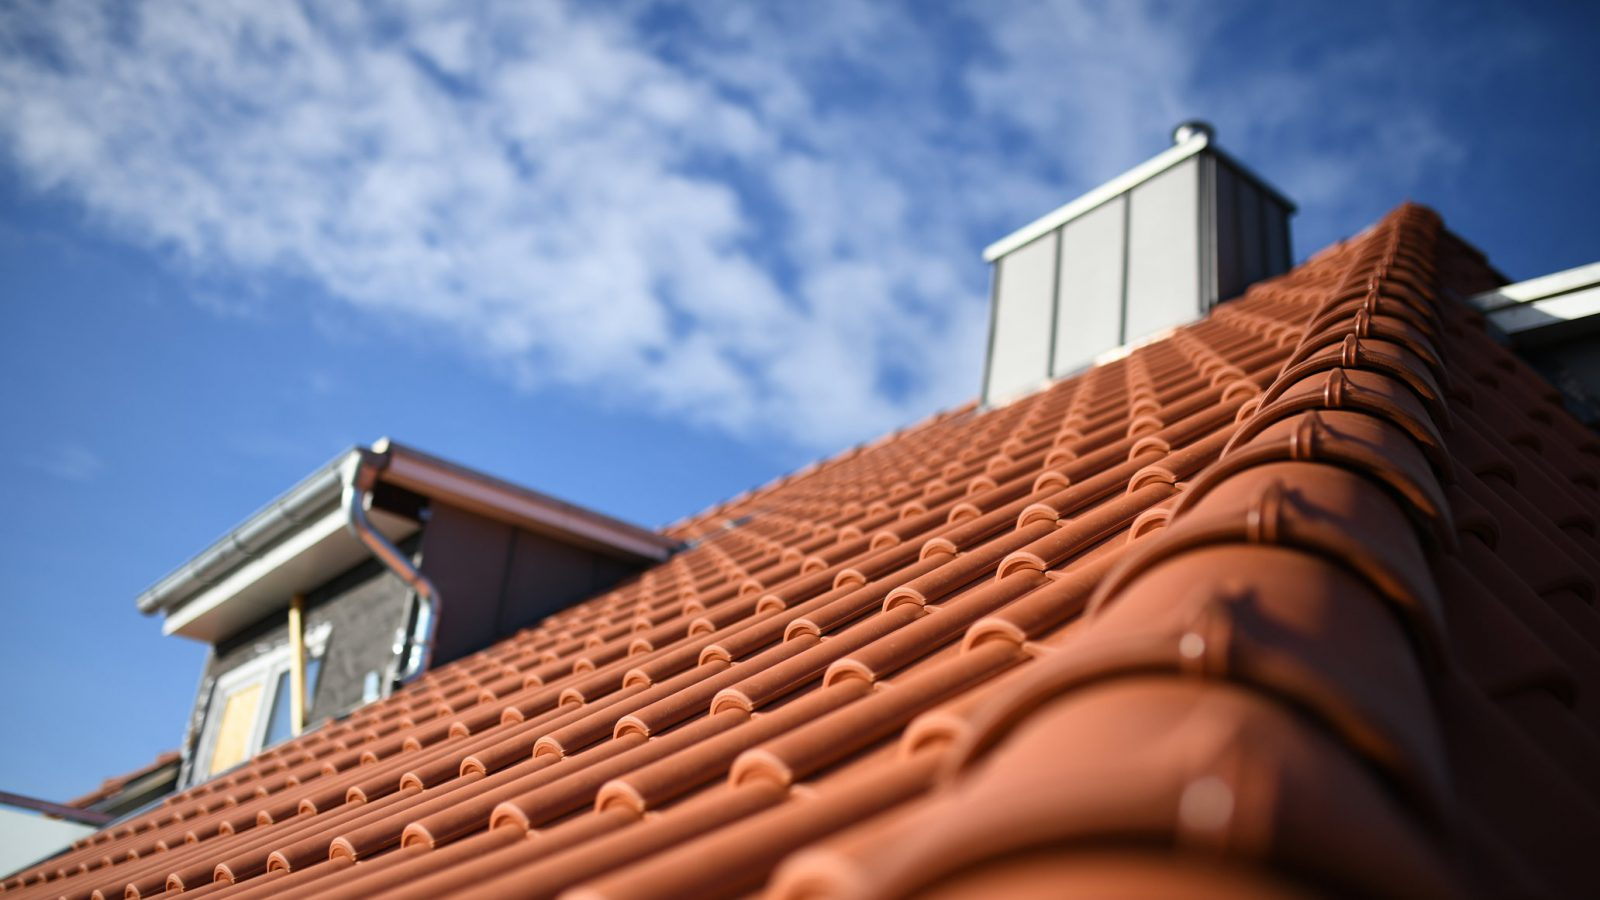 roof-repair-roofers-roof-replacement